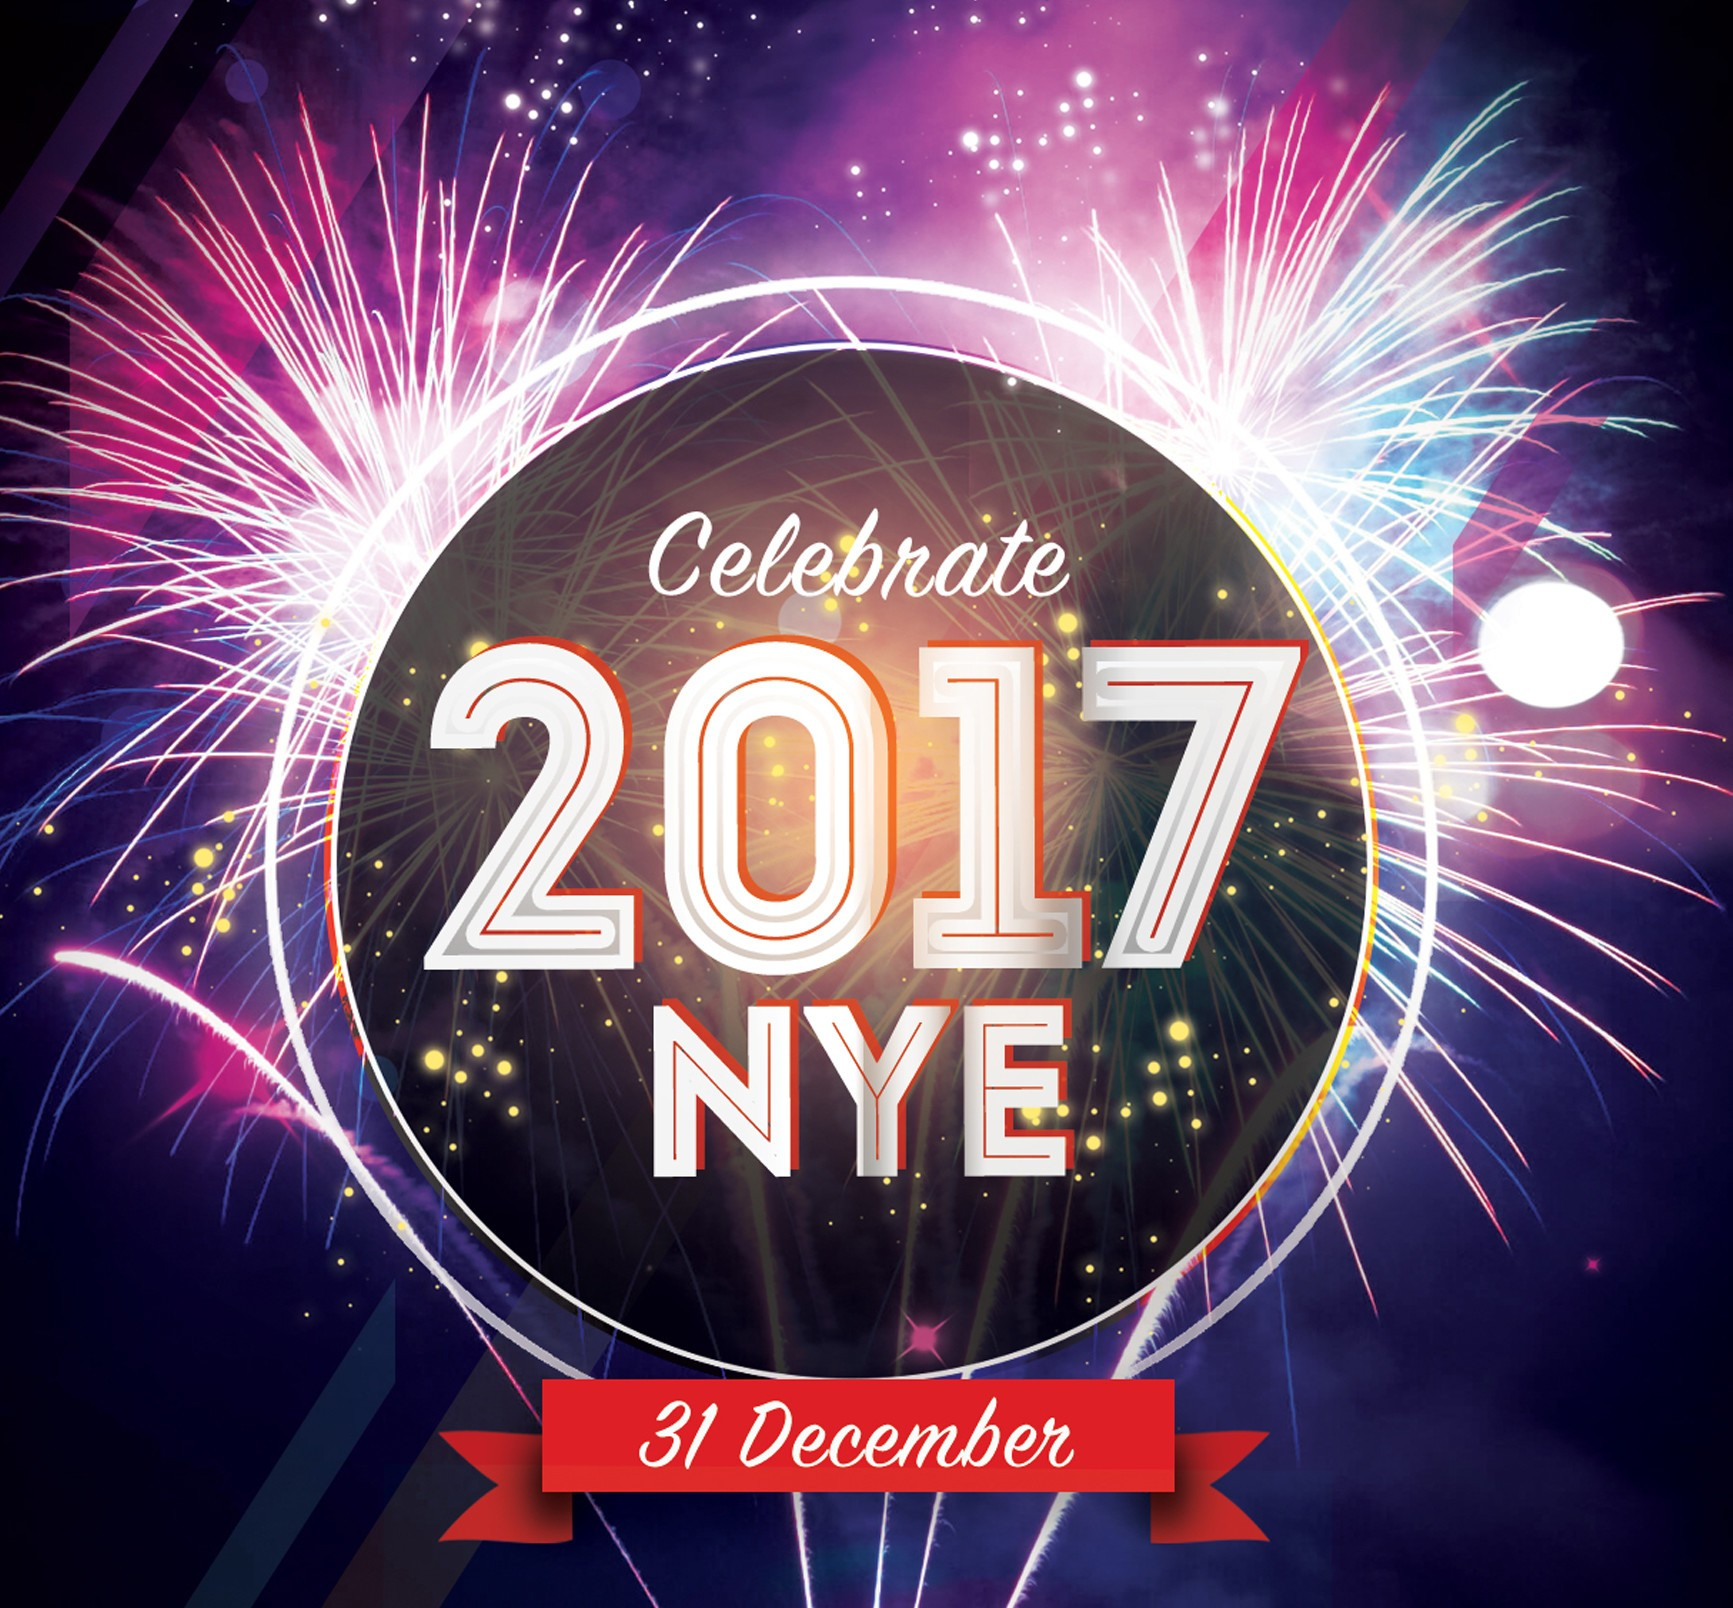 10 Free New Years Eve 2017 PSD Flyer Templates - Stockpsd.net - Free ...